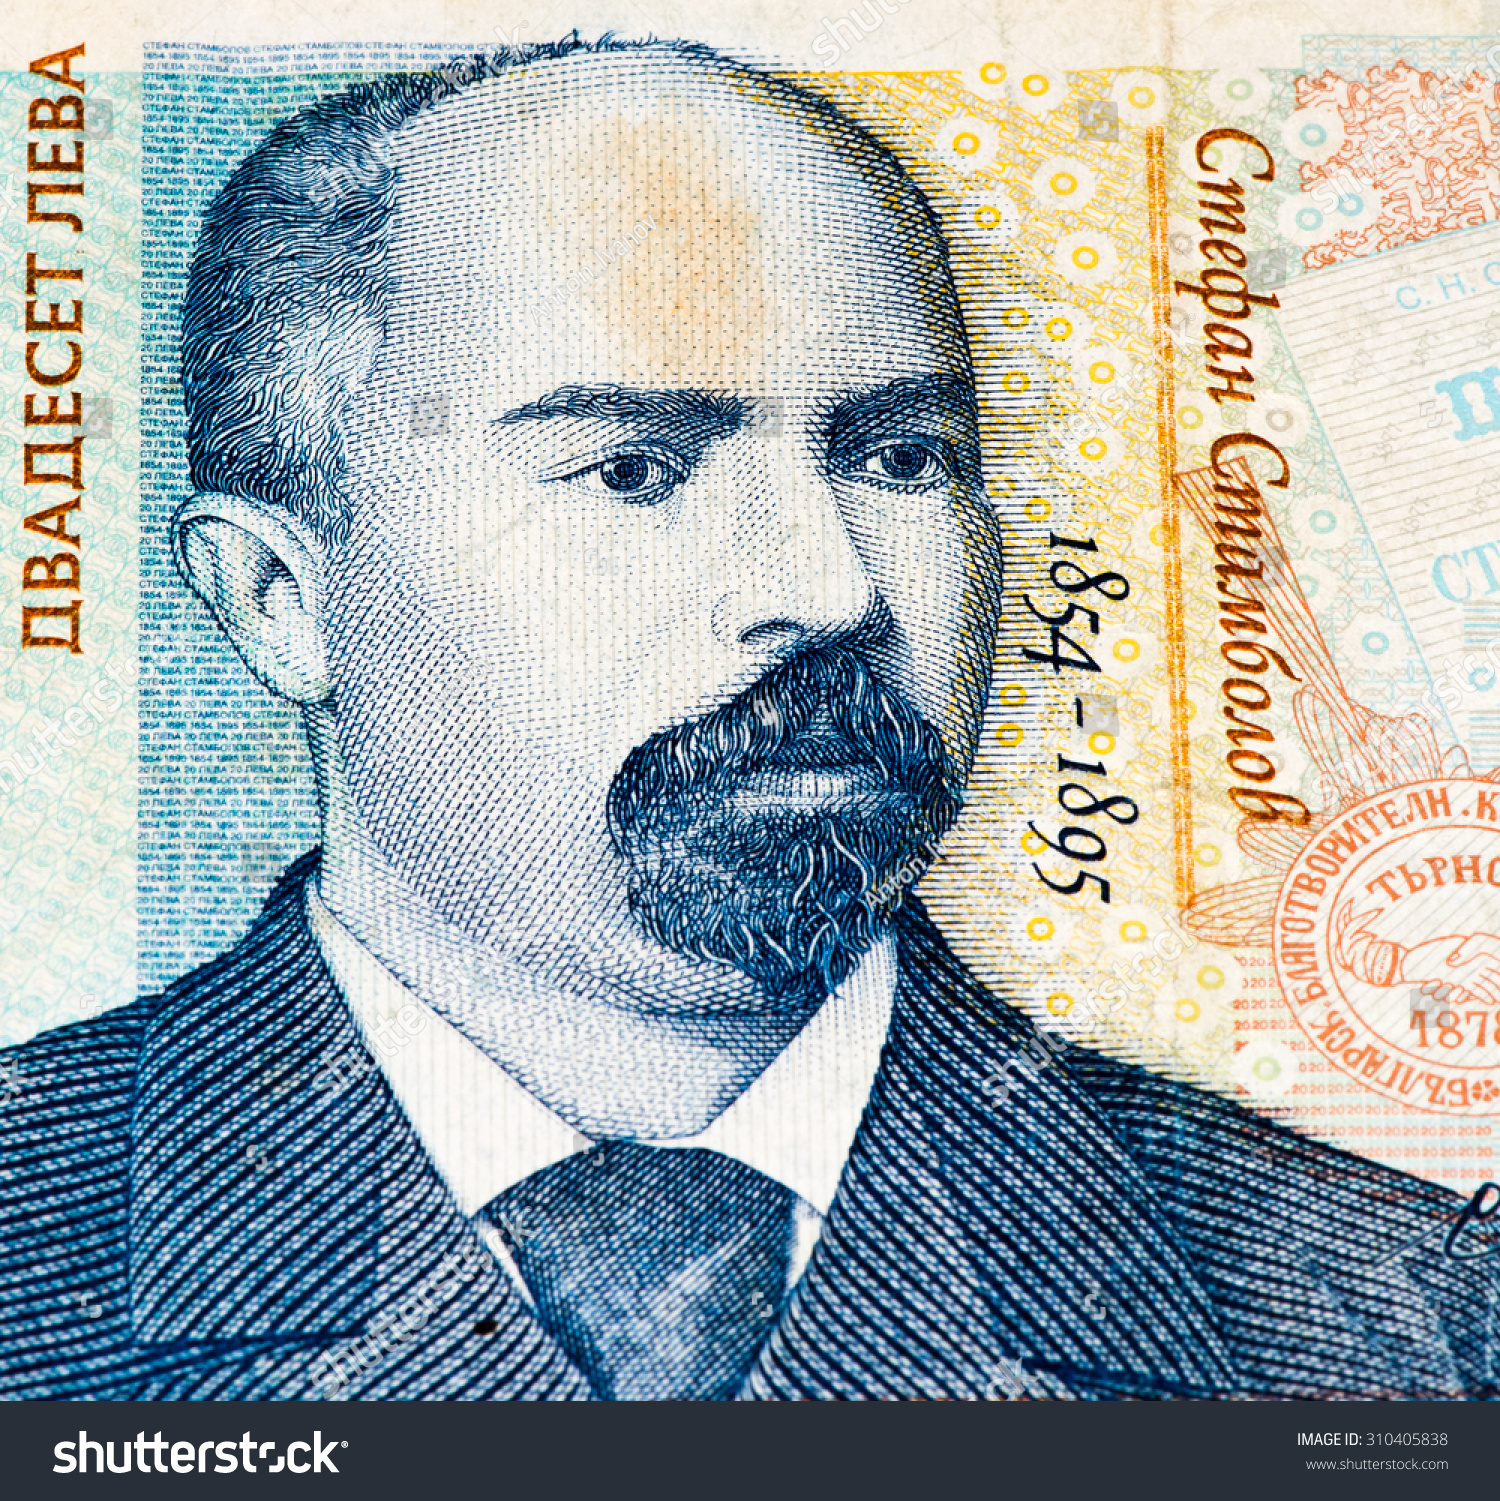 20 bulgarian lev bank note lev stock photo 310405838 shutterstock 20 bulgarian lev bank note lev is the national currency of bulgary biocorpaavc